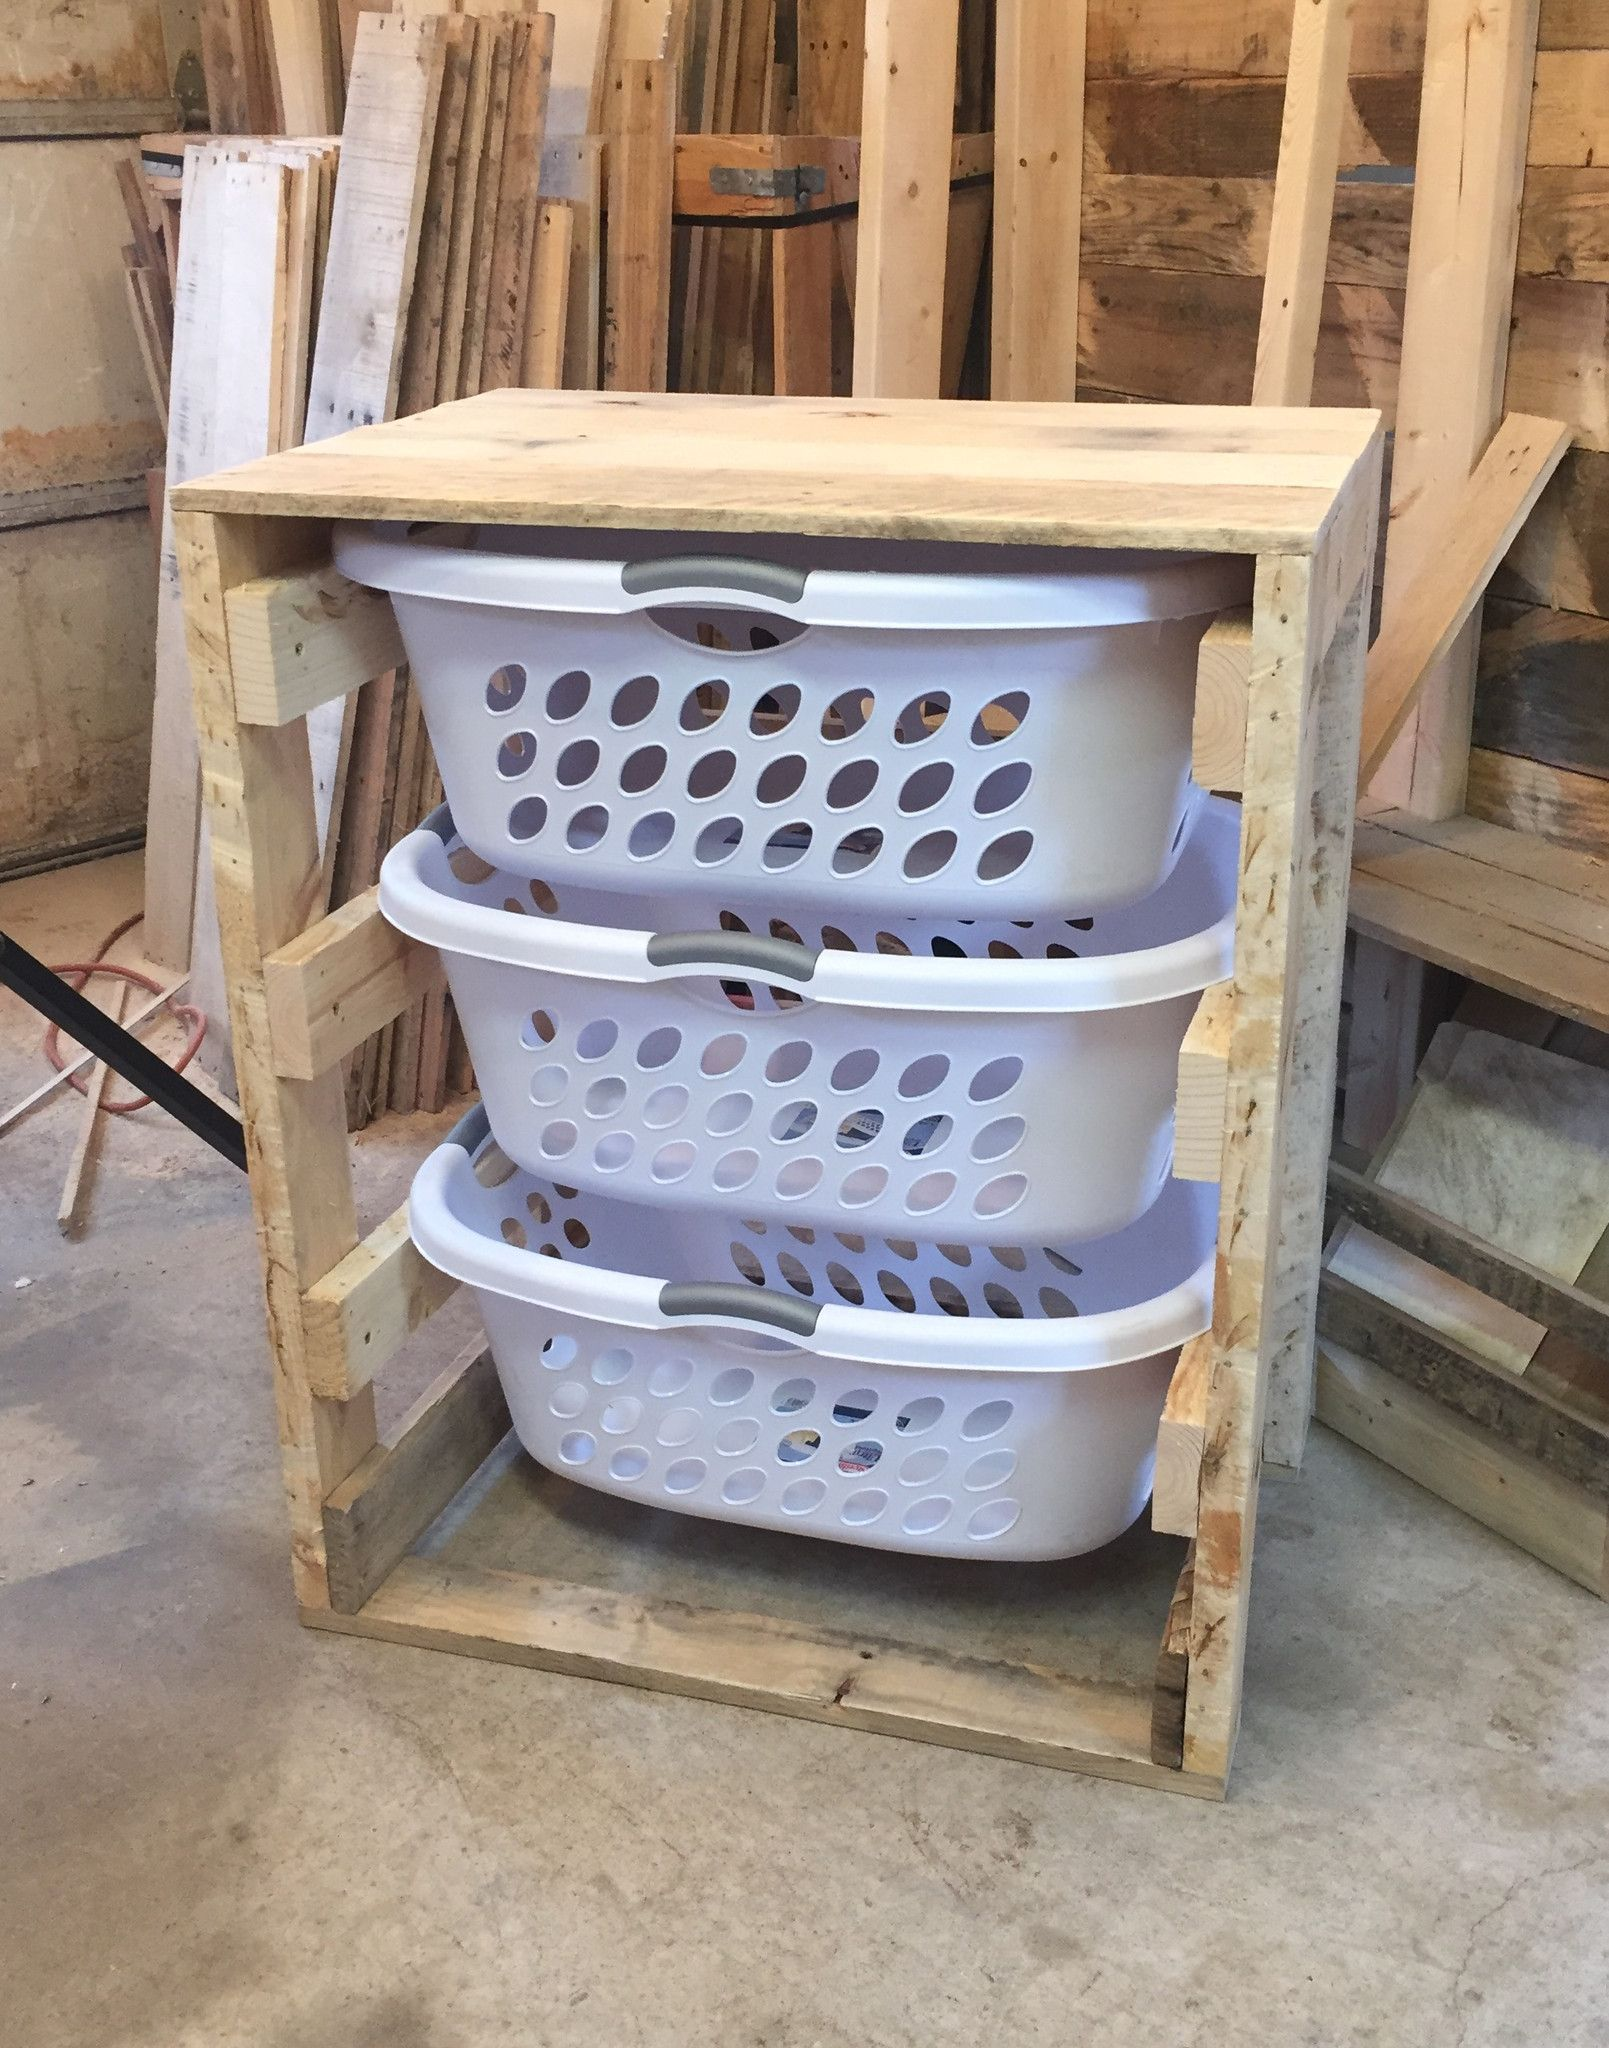 Laundry chest laundry basket dresser laundry hamper and for Small bathroom hamper ideas